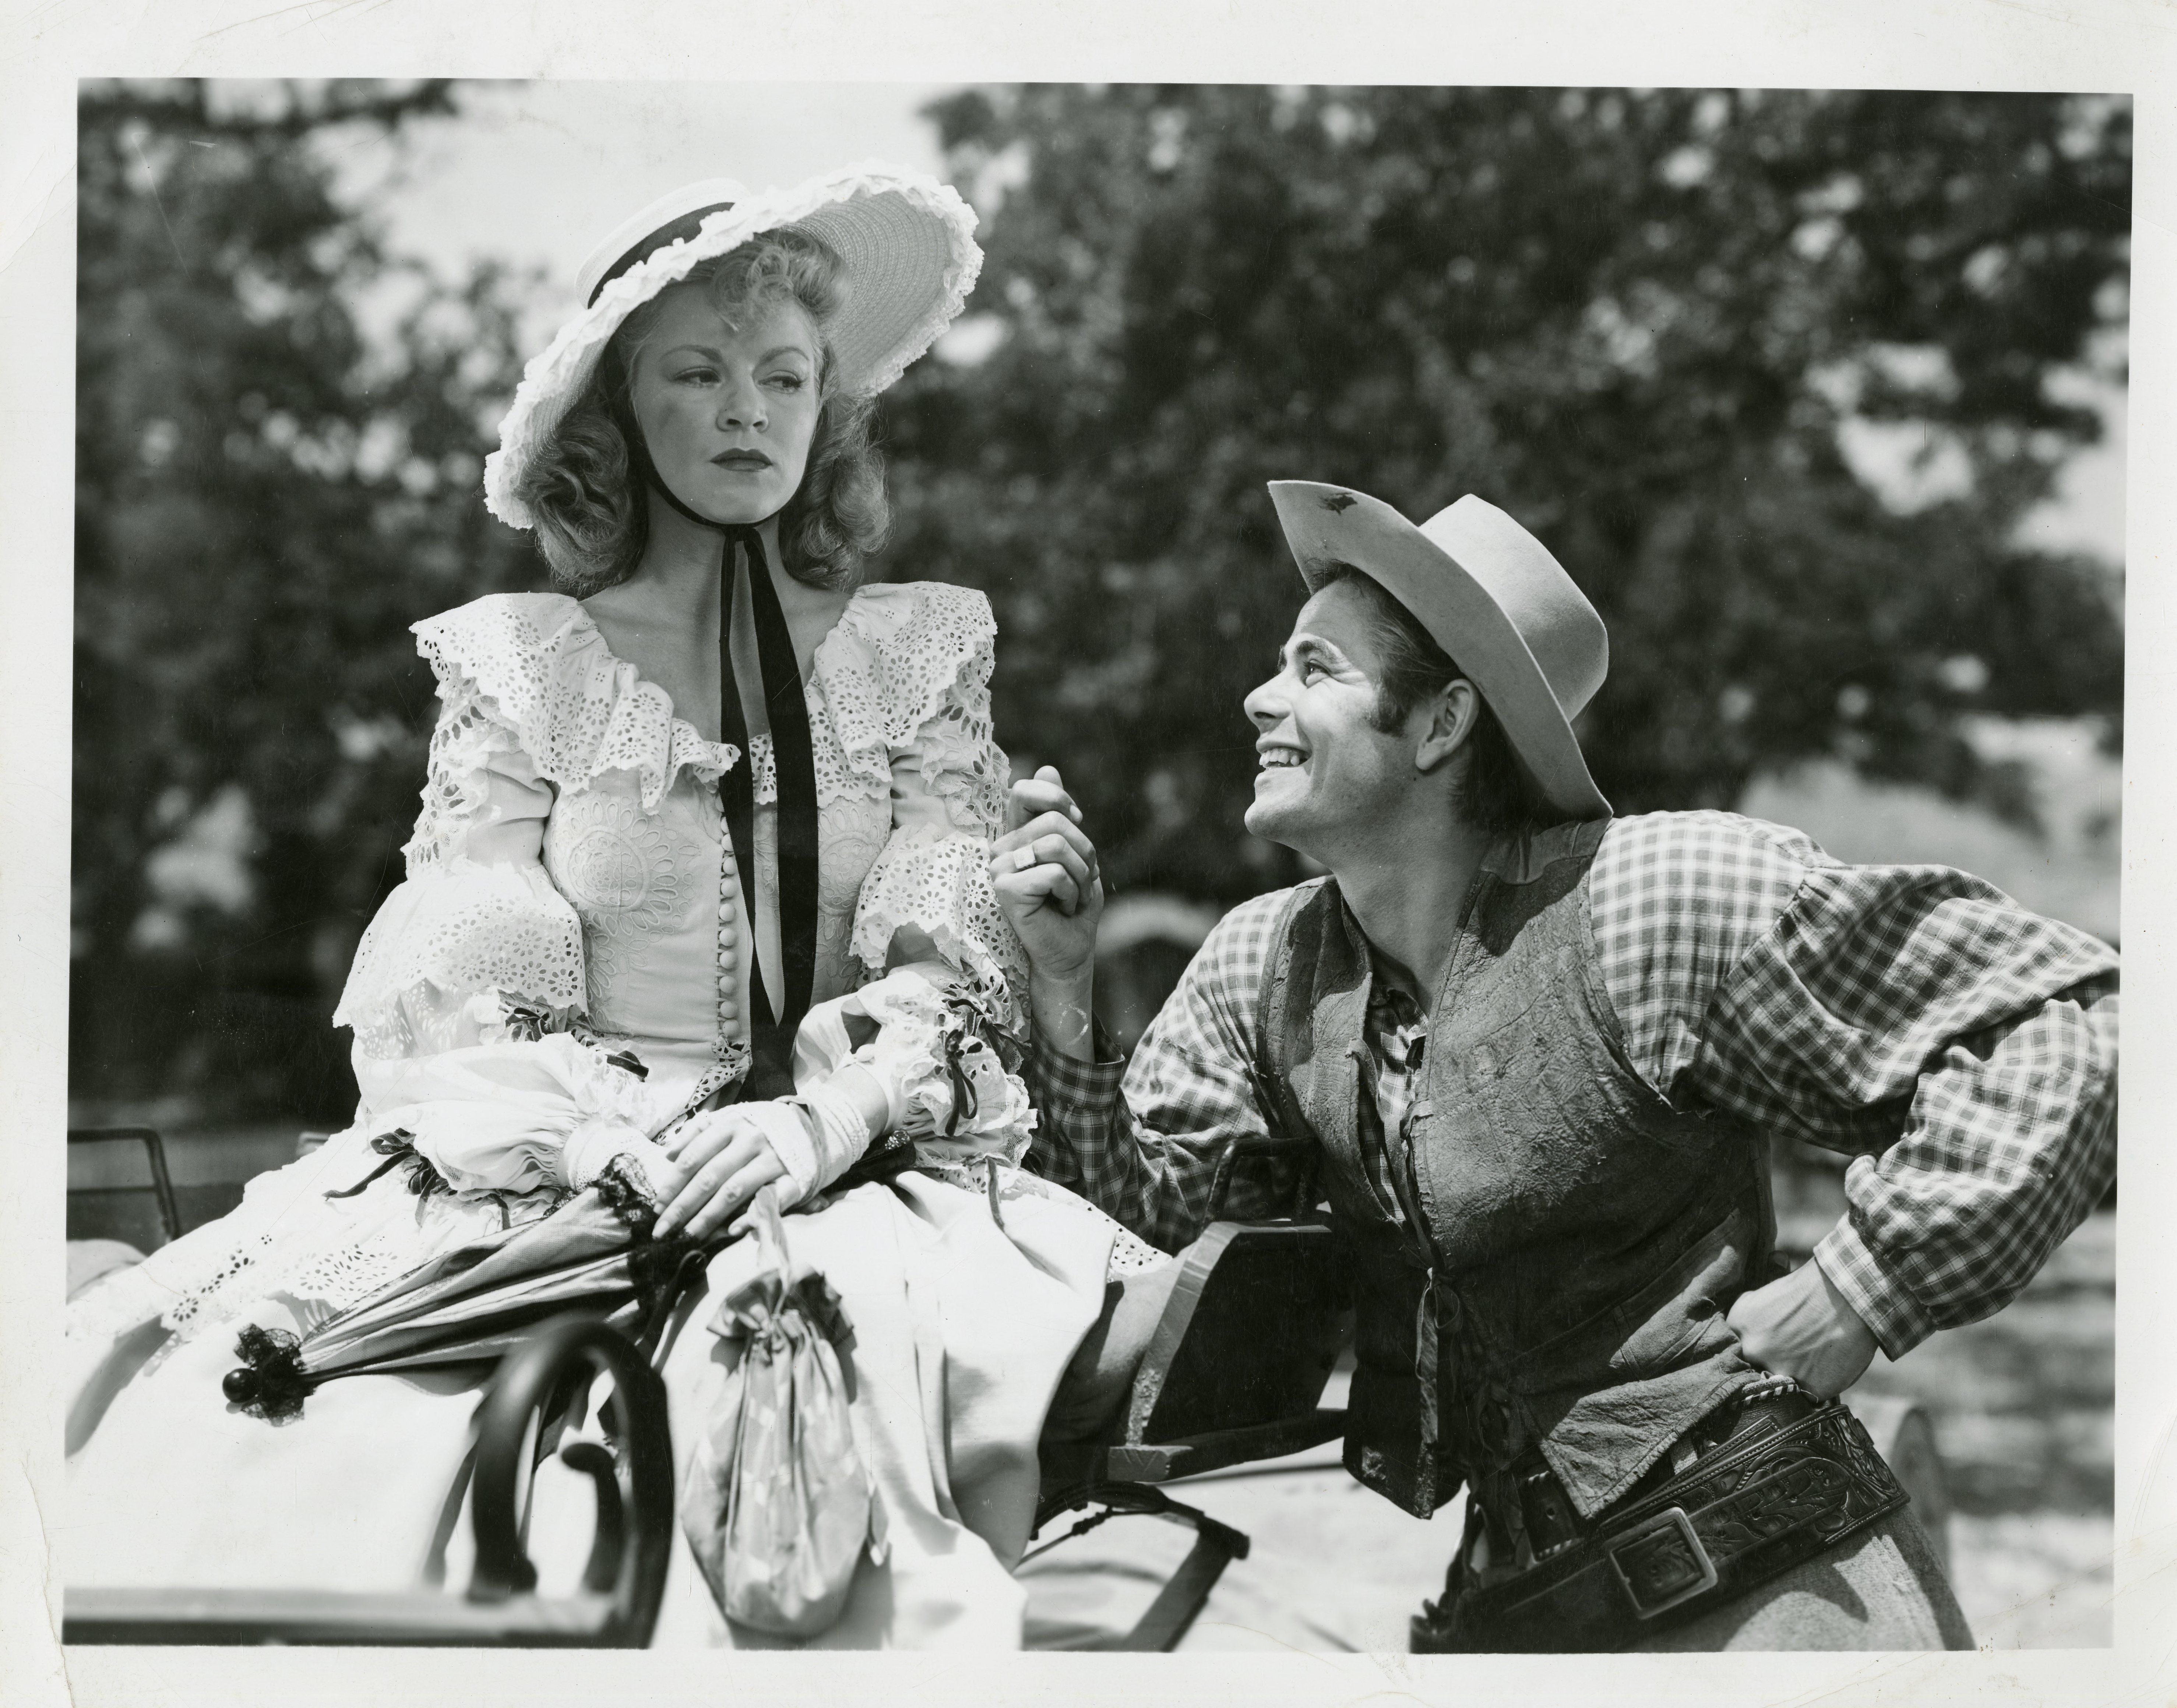 Claire Trever and Glen Ford in a scene from the Columbia production, Texas.